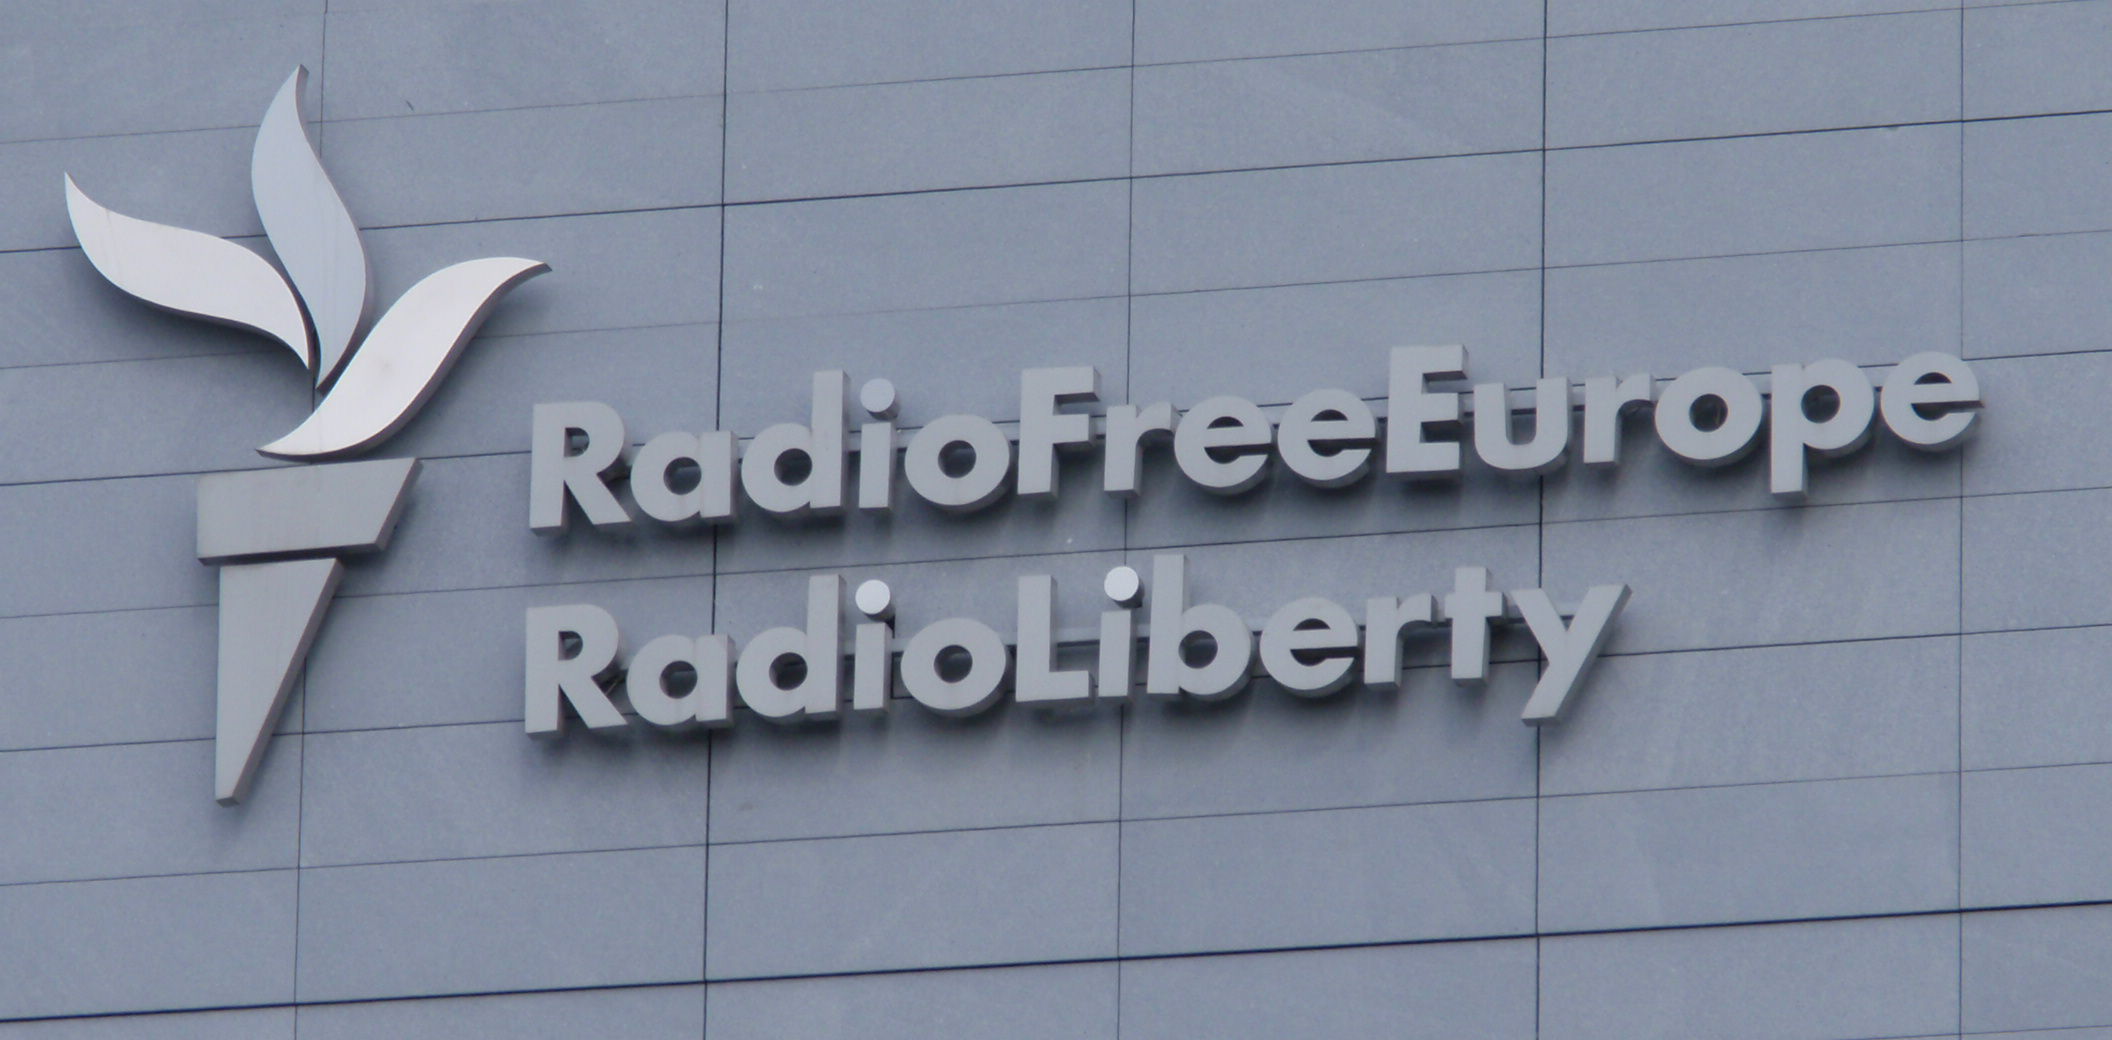 Russia issues $70,000 fine in effort to push out US news broadcaster